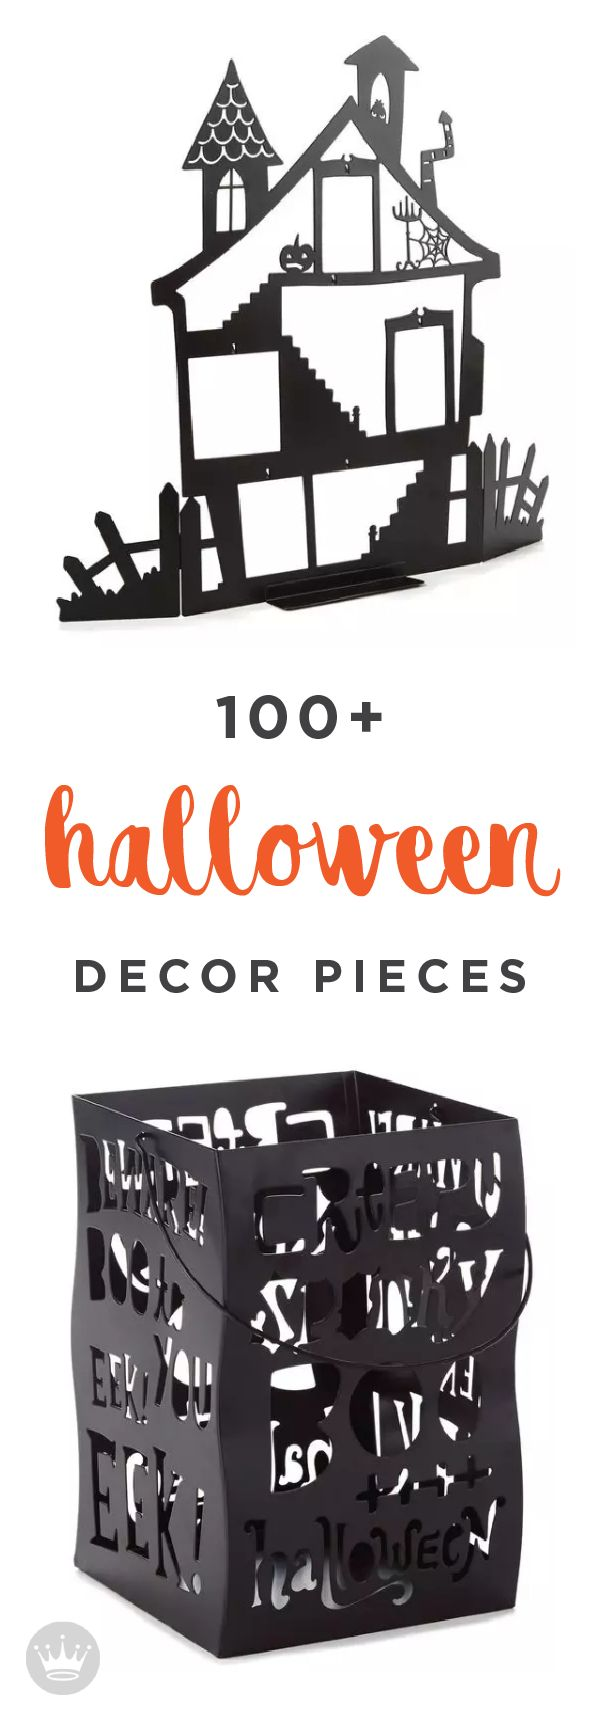 searching for the perfect halloween decorations for this year hallmark has 100 decor pieces - Hallmark Halloween Decorations